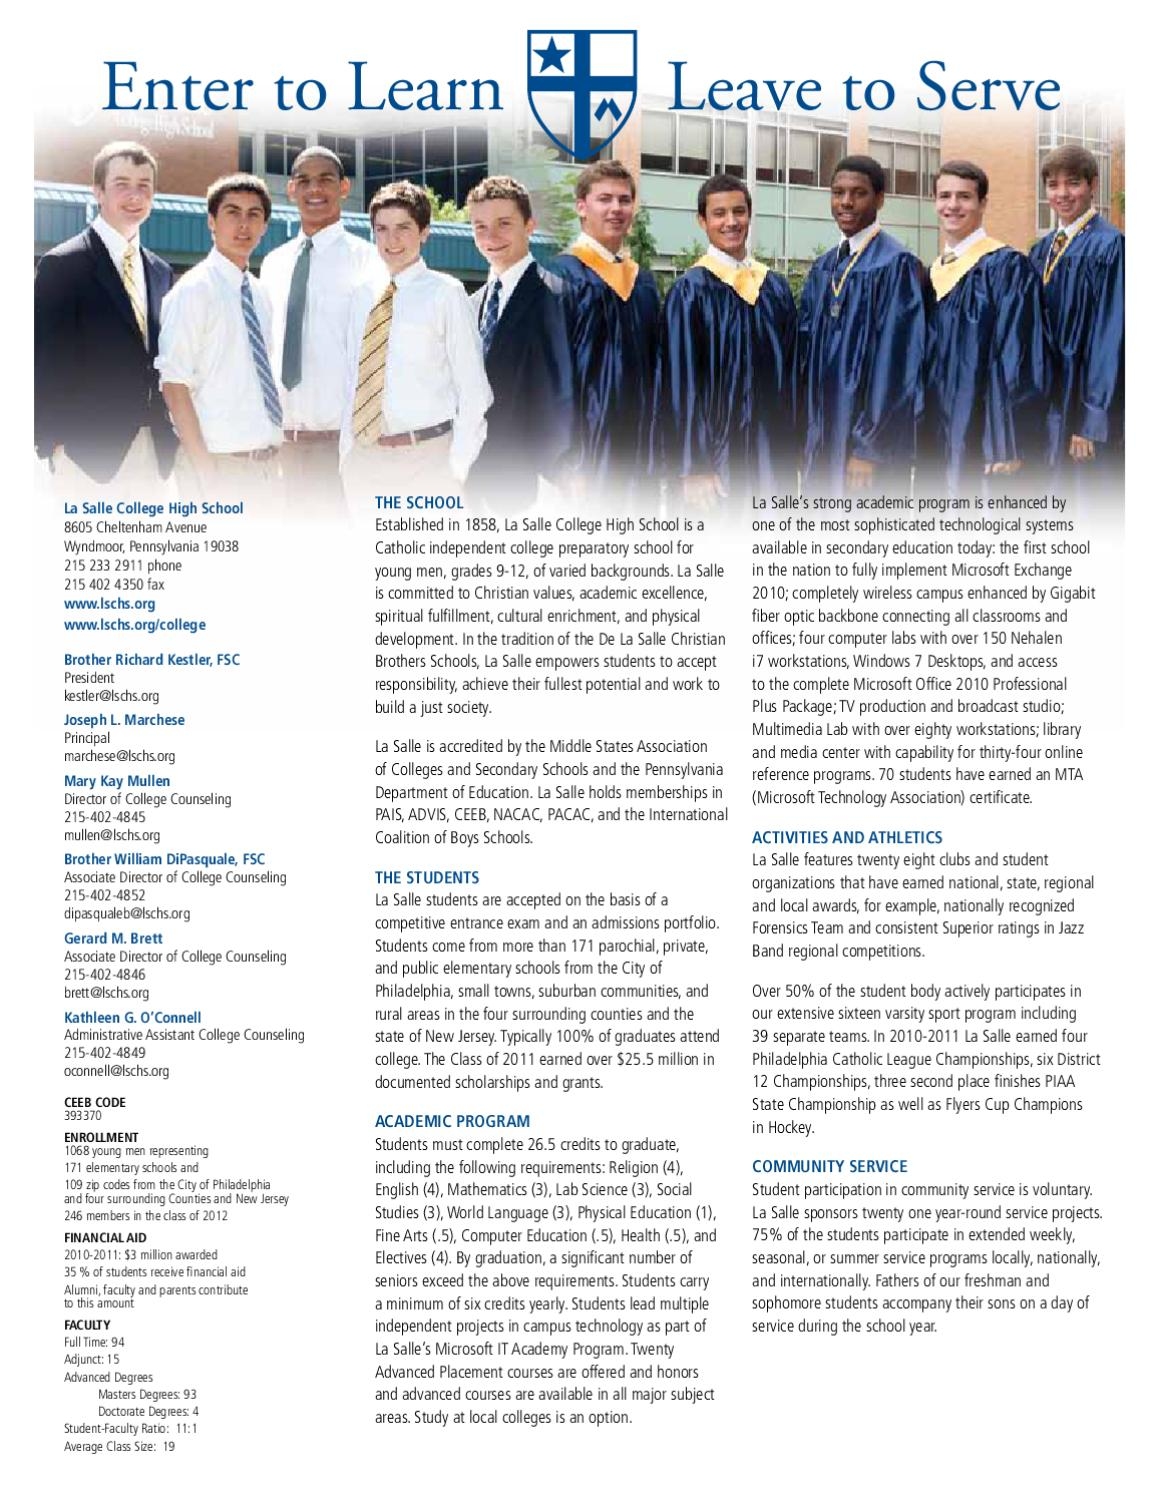 College Counseling Profile 2011 by La Salle College High School - issuu